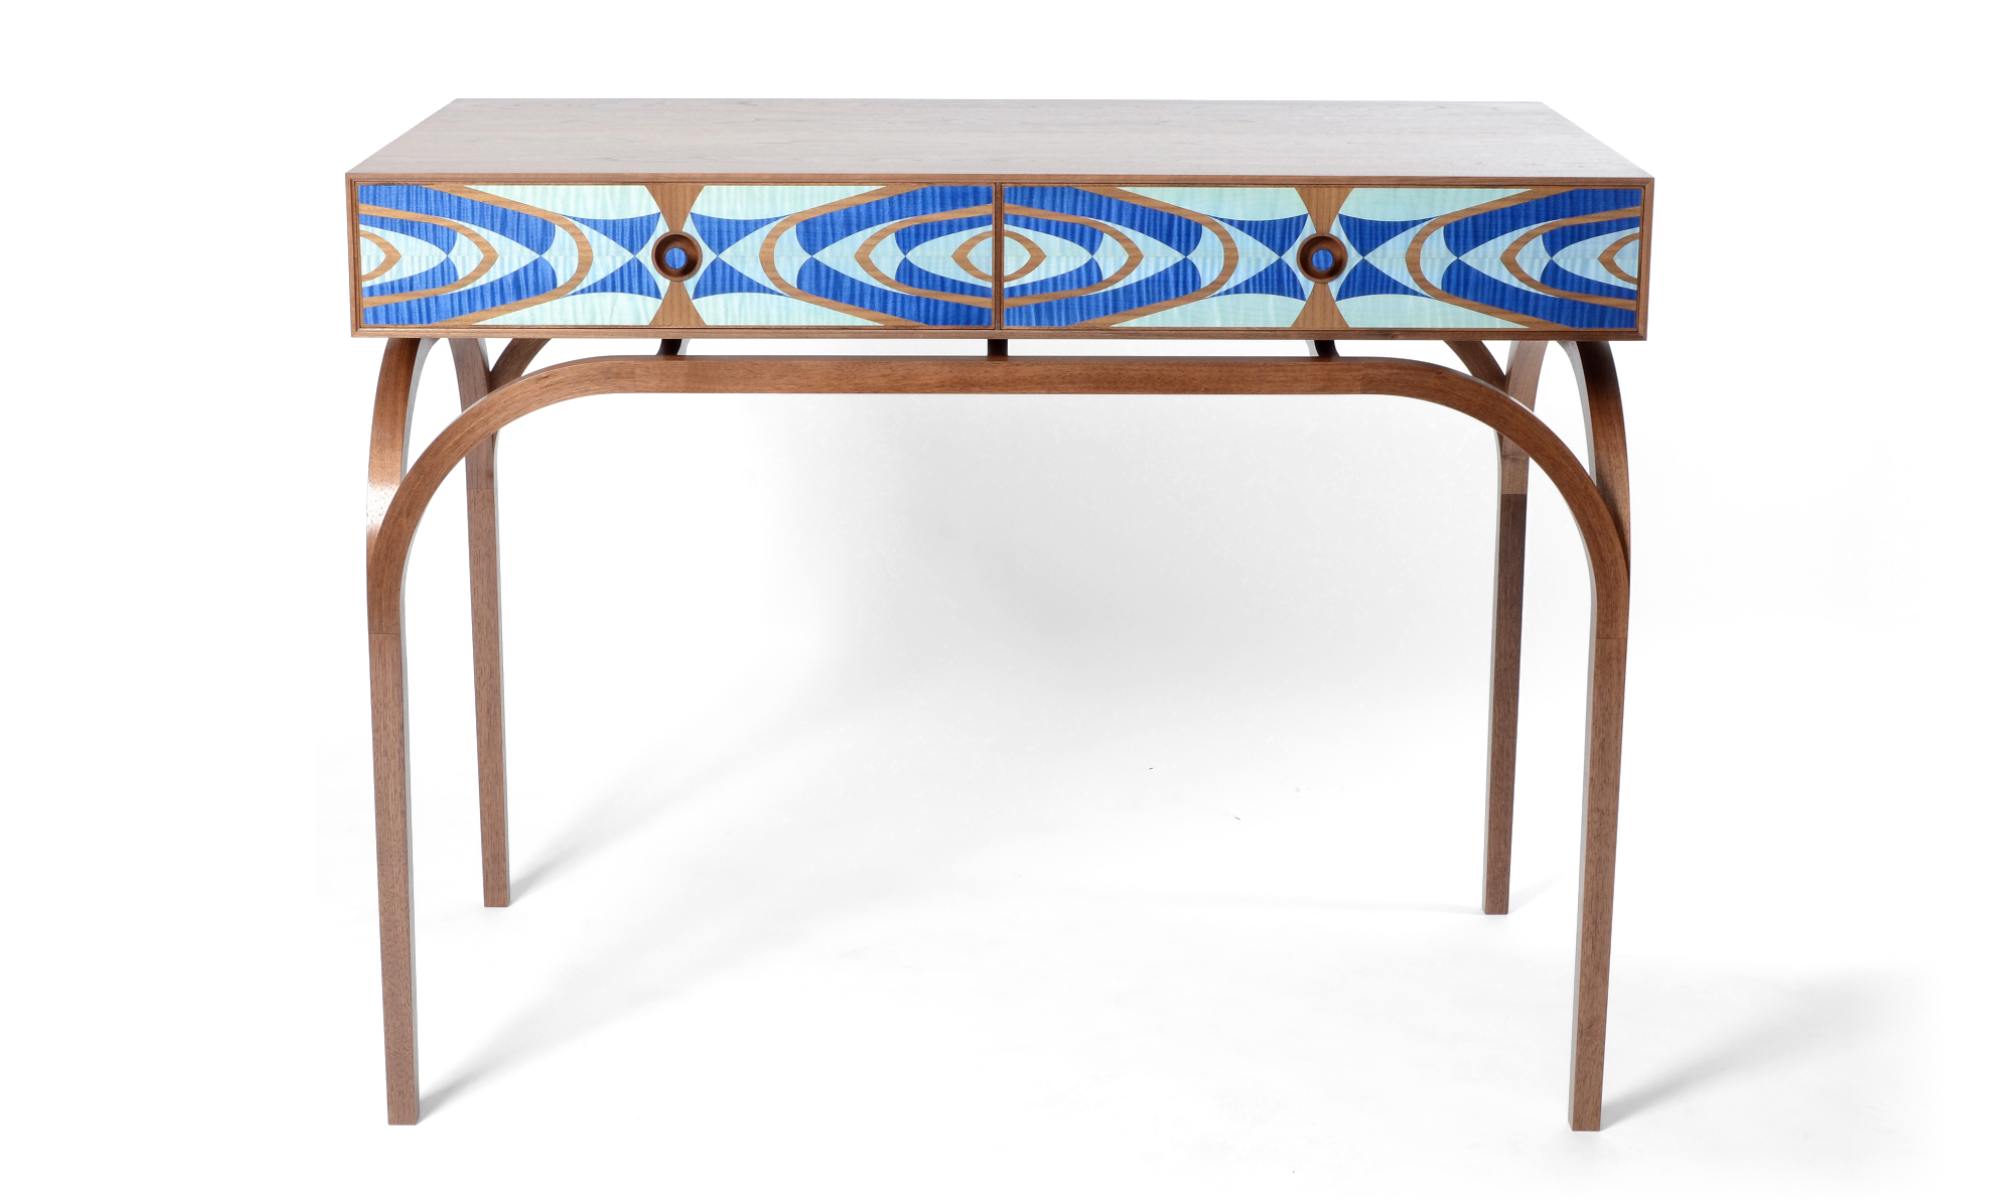 image of bespoke handcrafted console table furniture